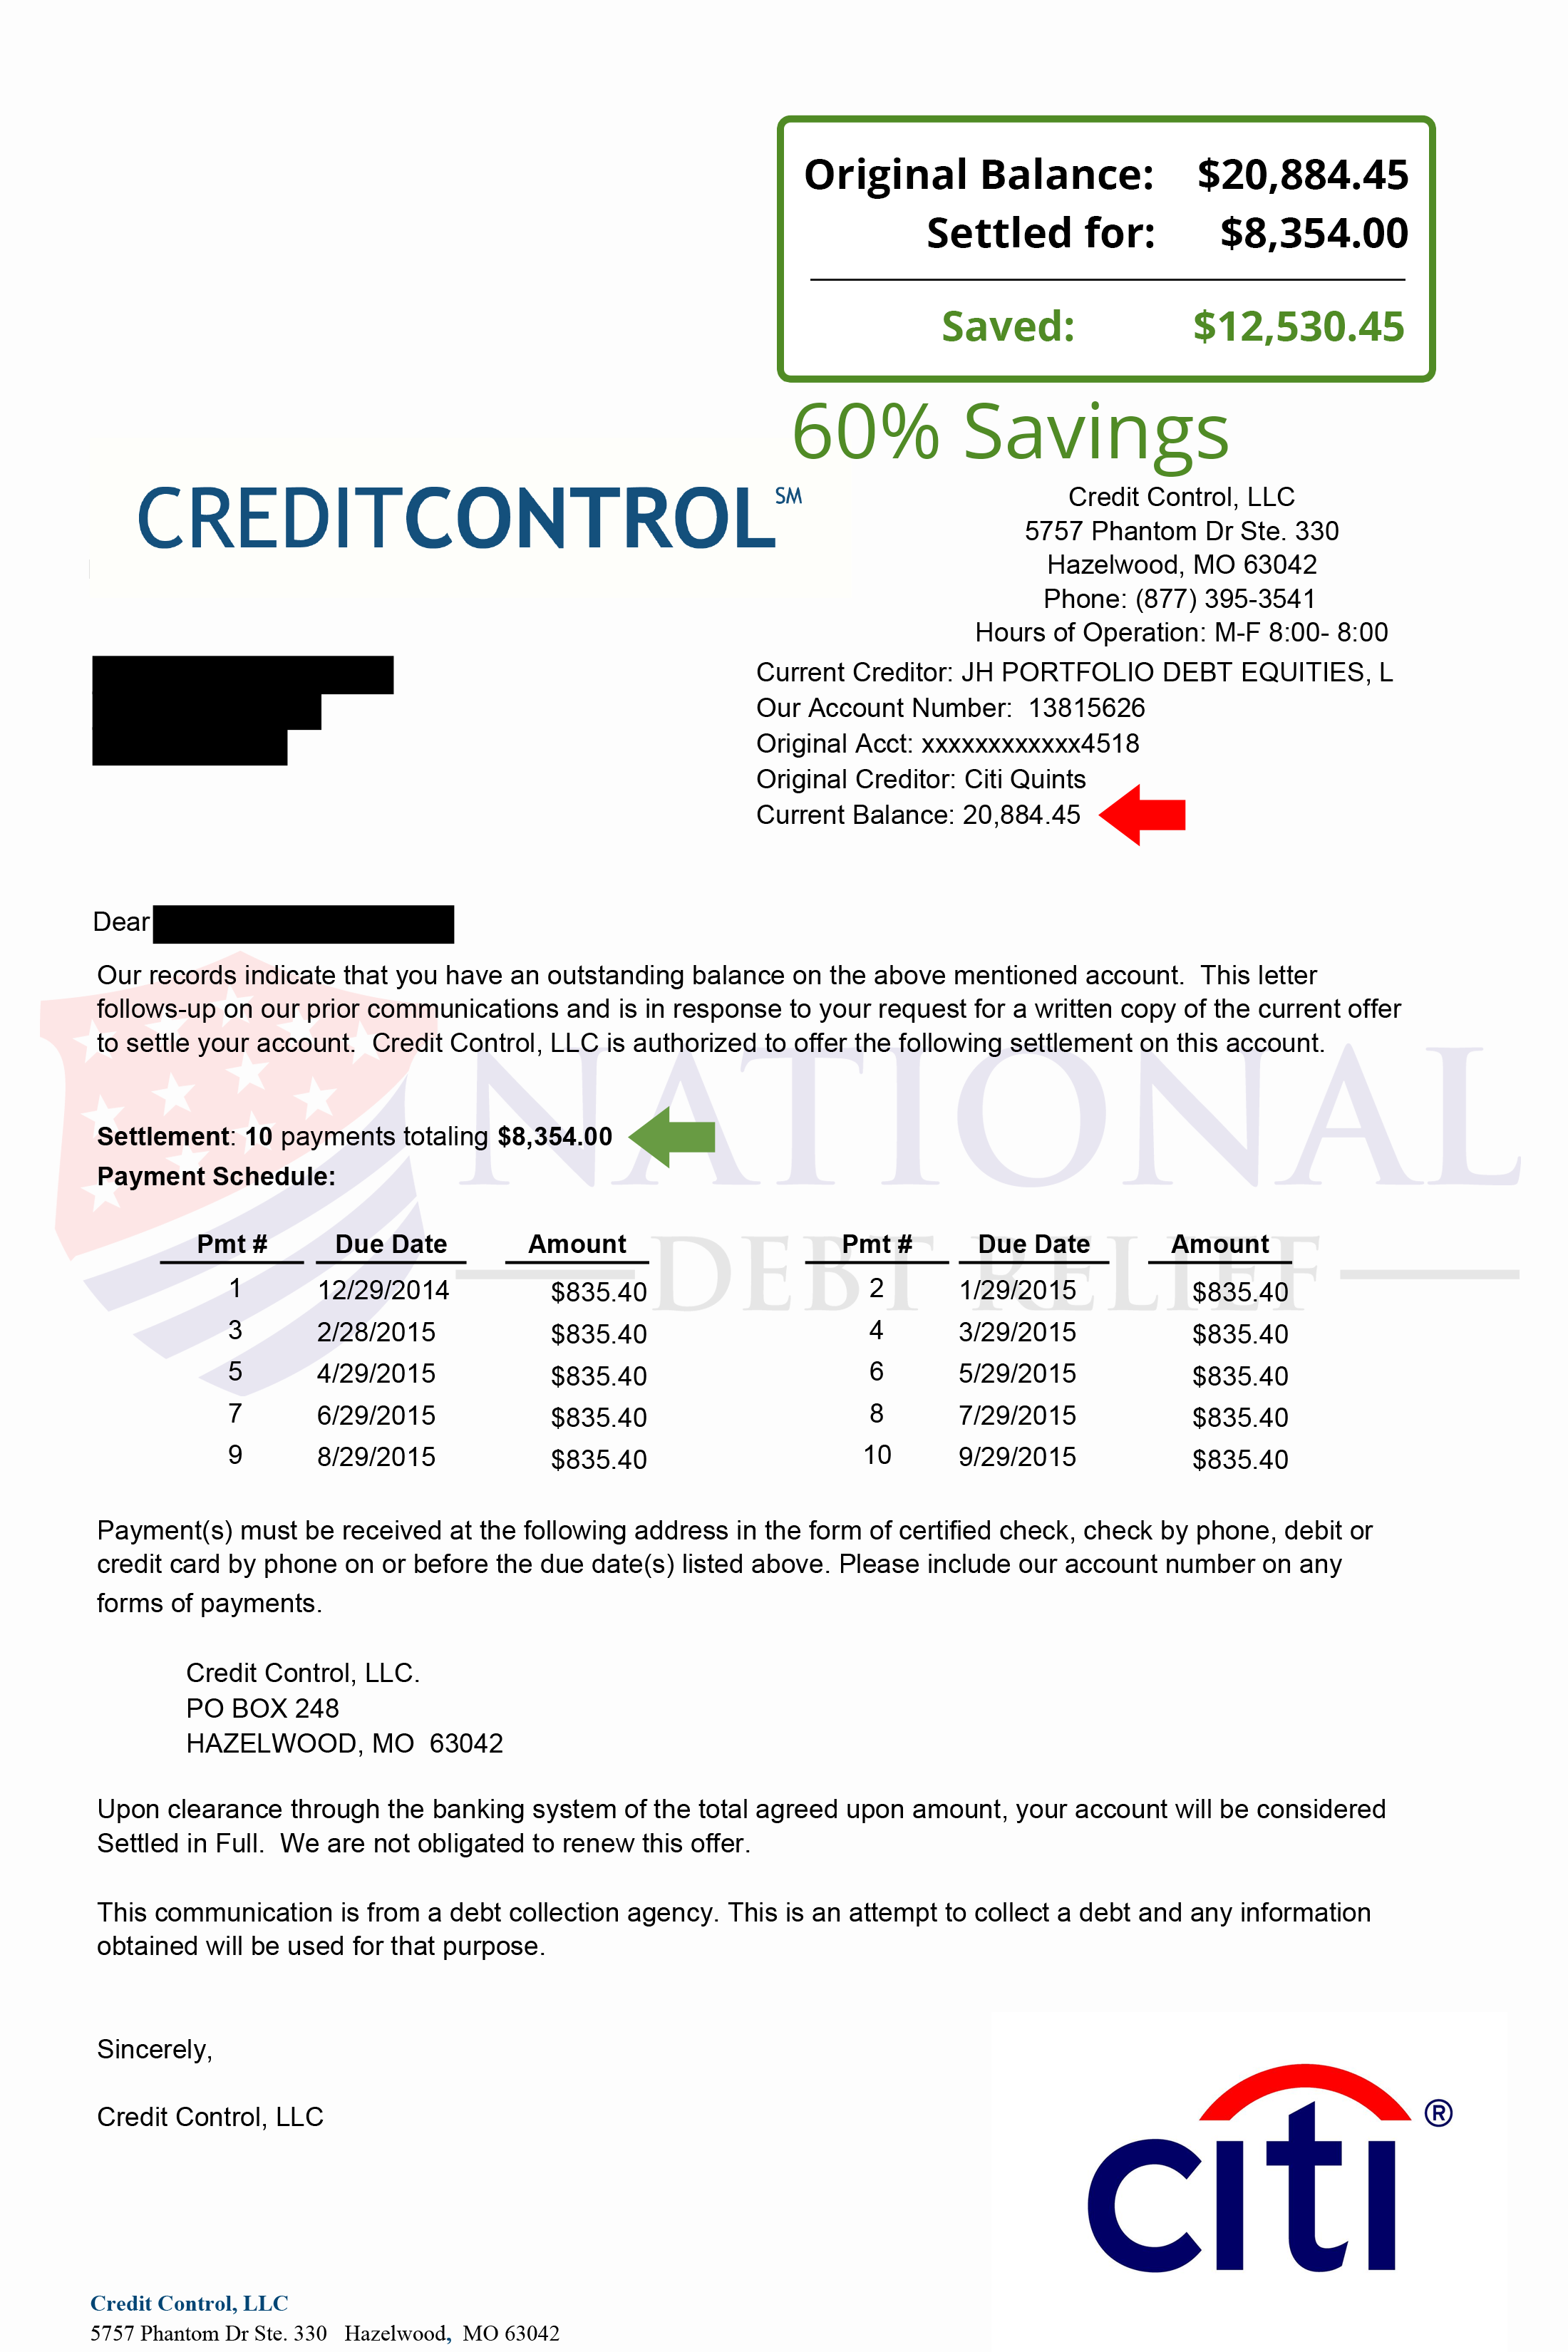 Debt settlement letters citi 60 savings spiritdancerdesigns Gallery